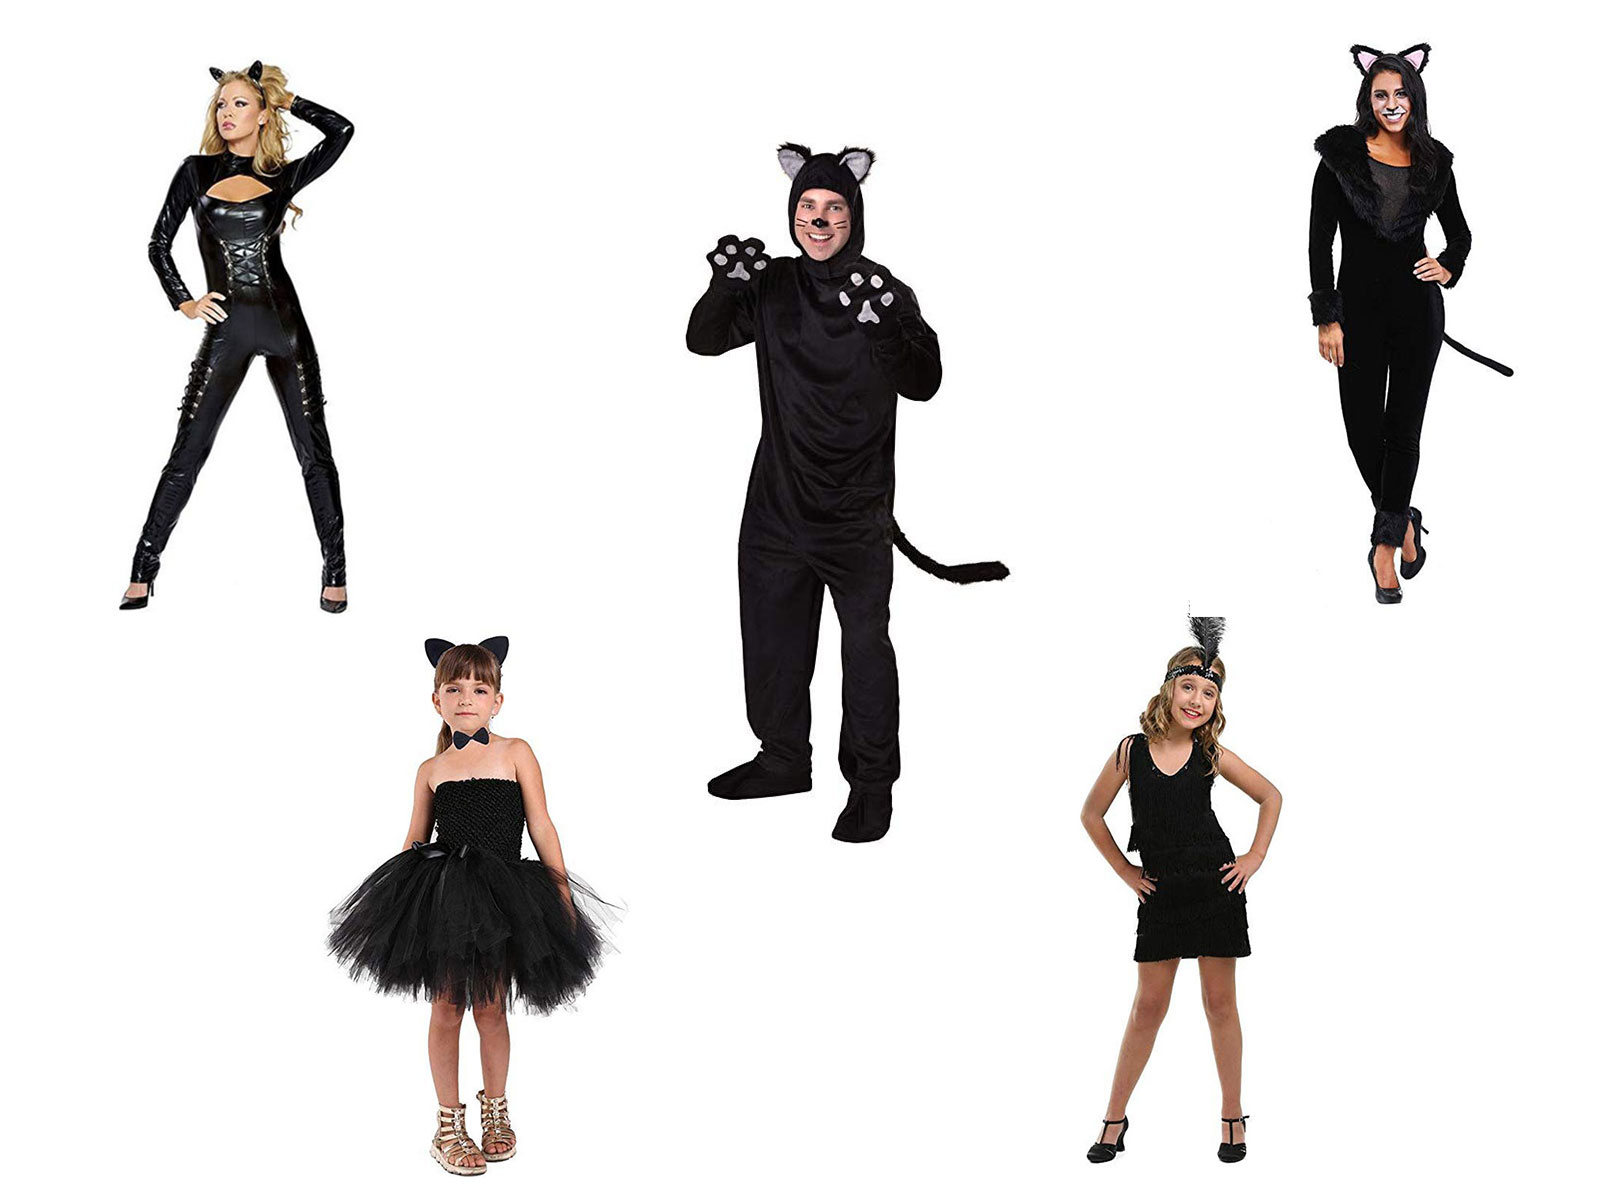 Halloween 2019 Costume Ideas Kids.12 Halloween Black Cat Costume Ideas For Kids Men Women